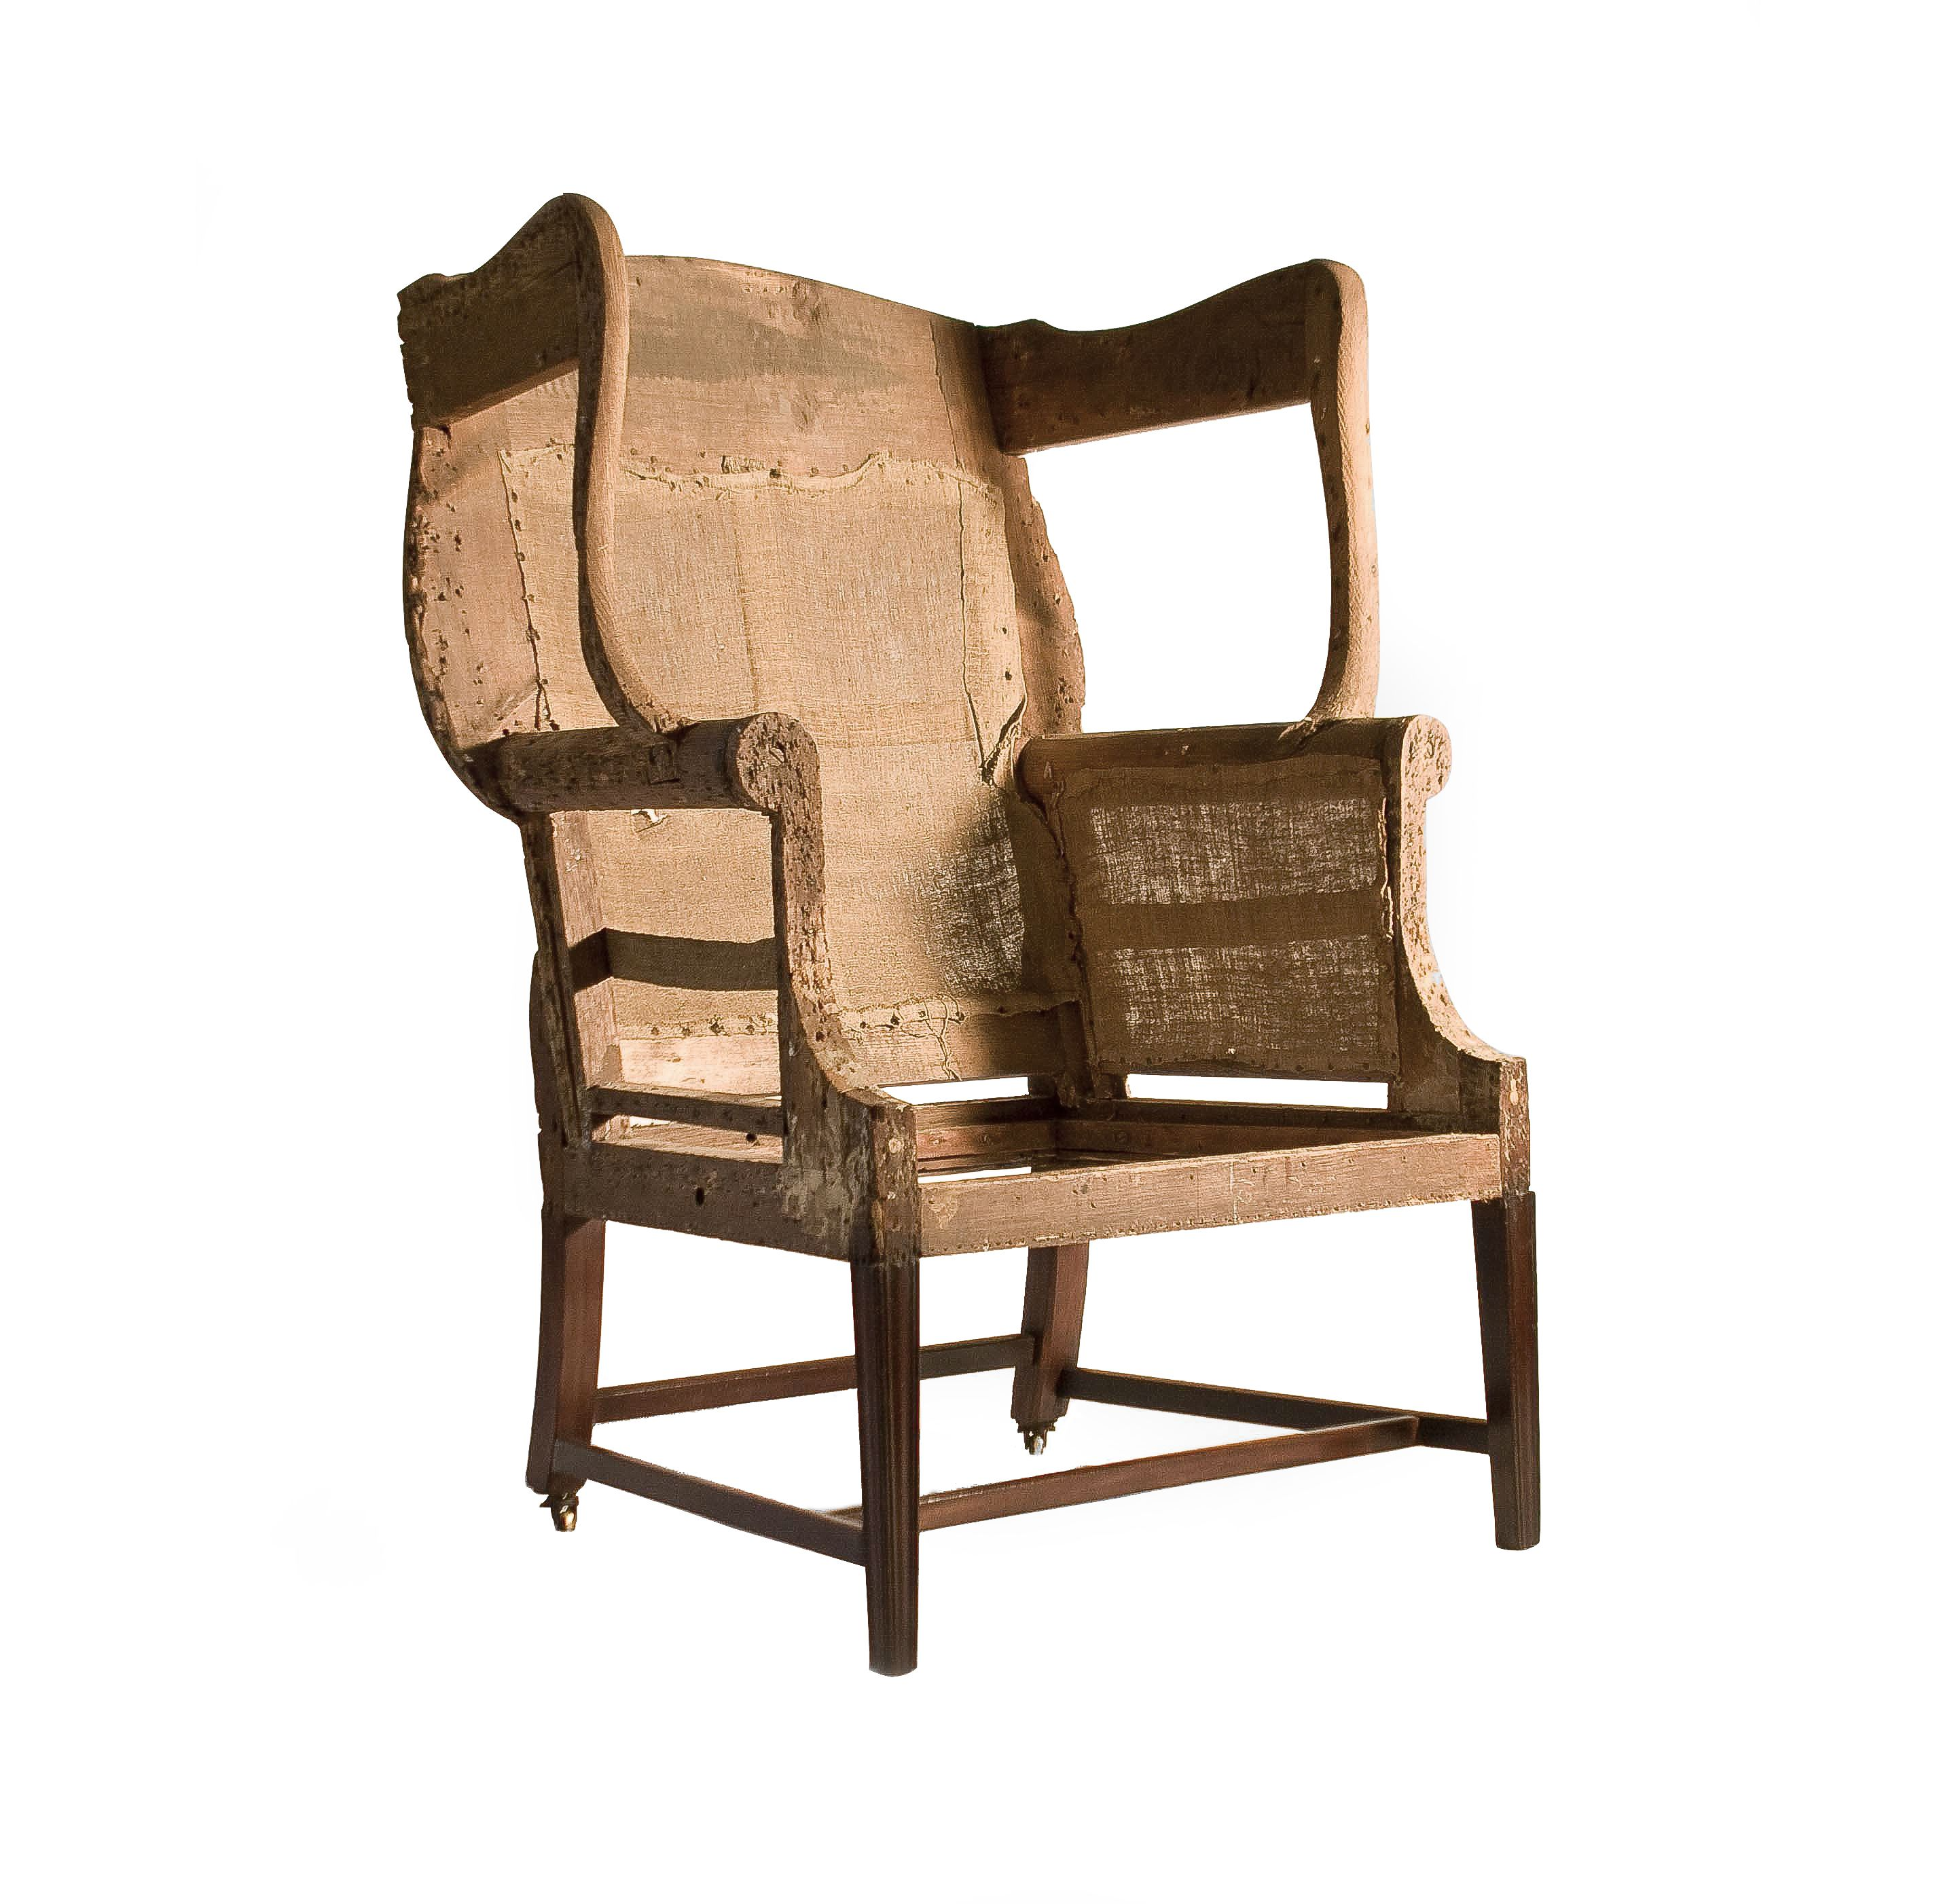 Google Chair 18th Century Wingback Chair Google Search Sit Down And